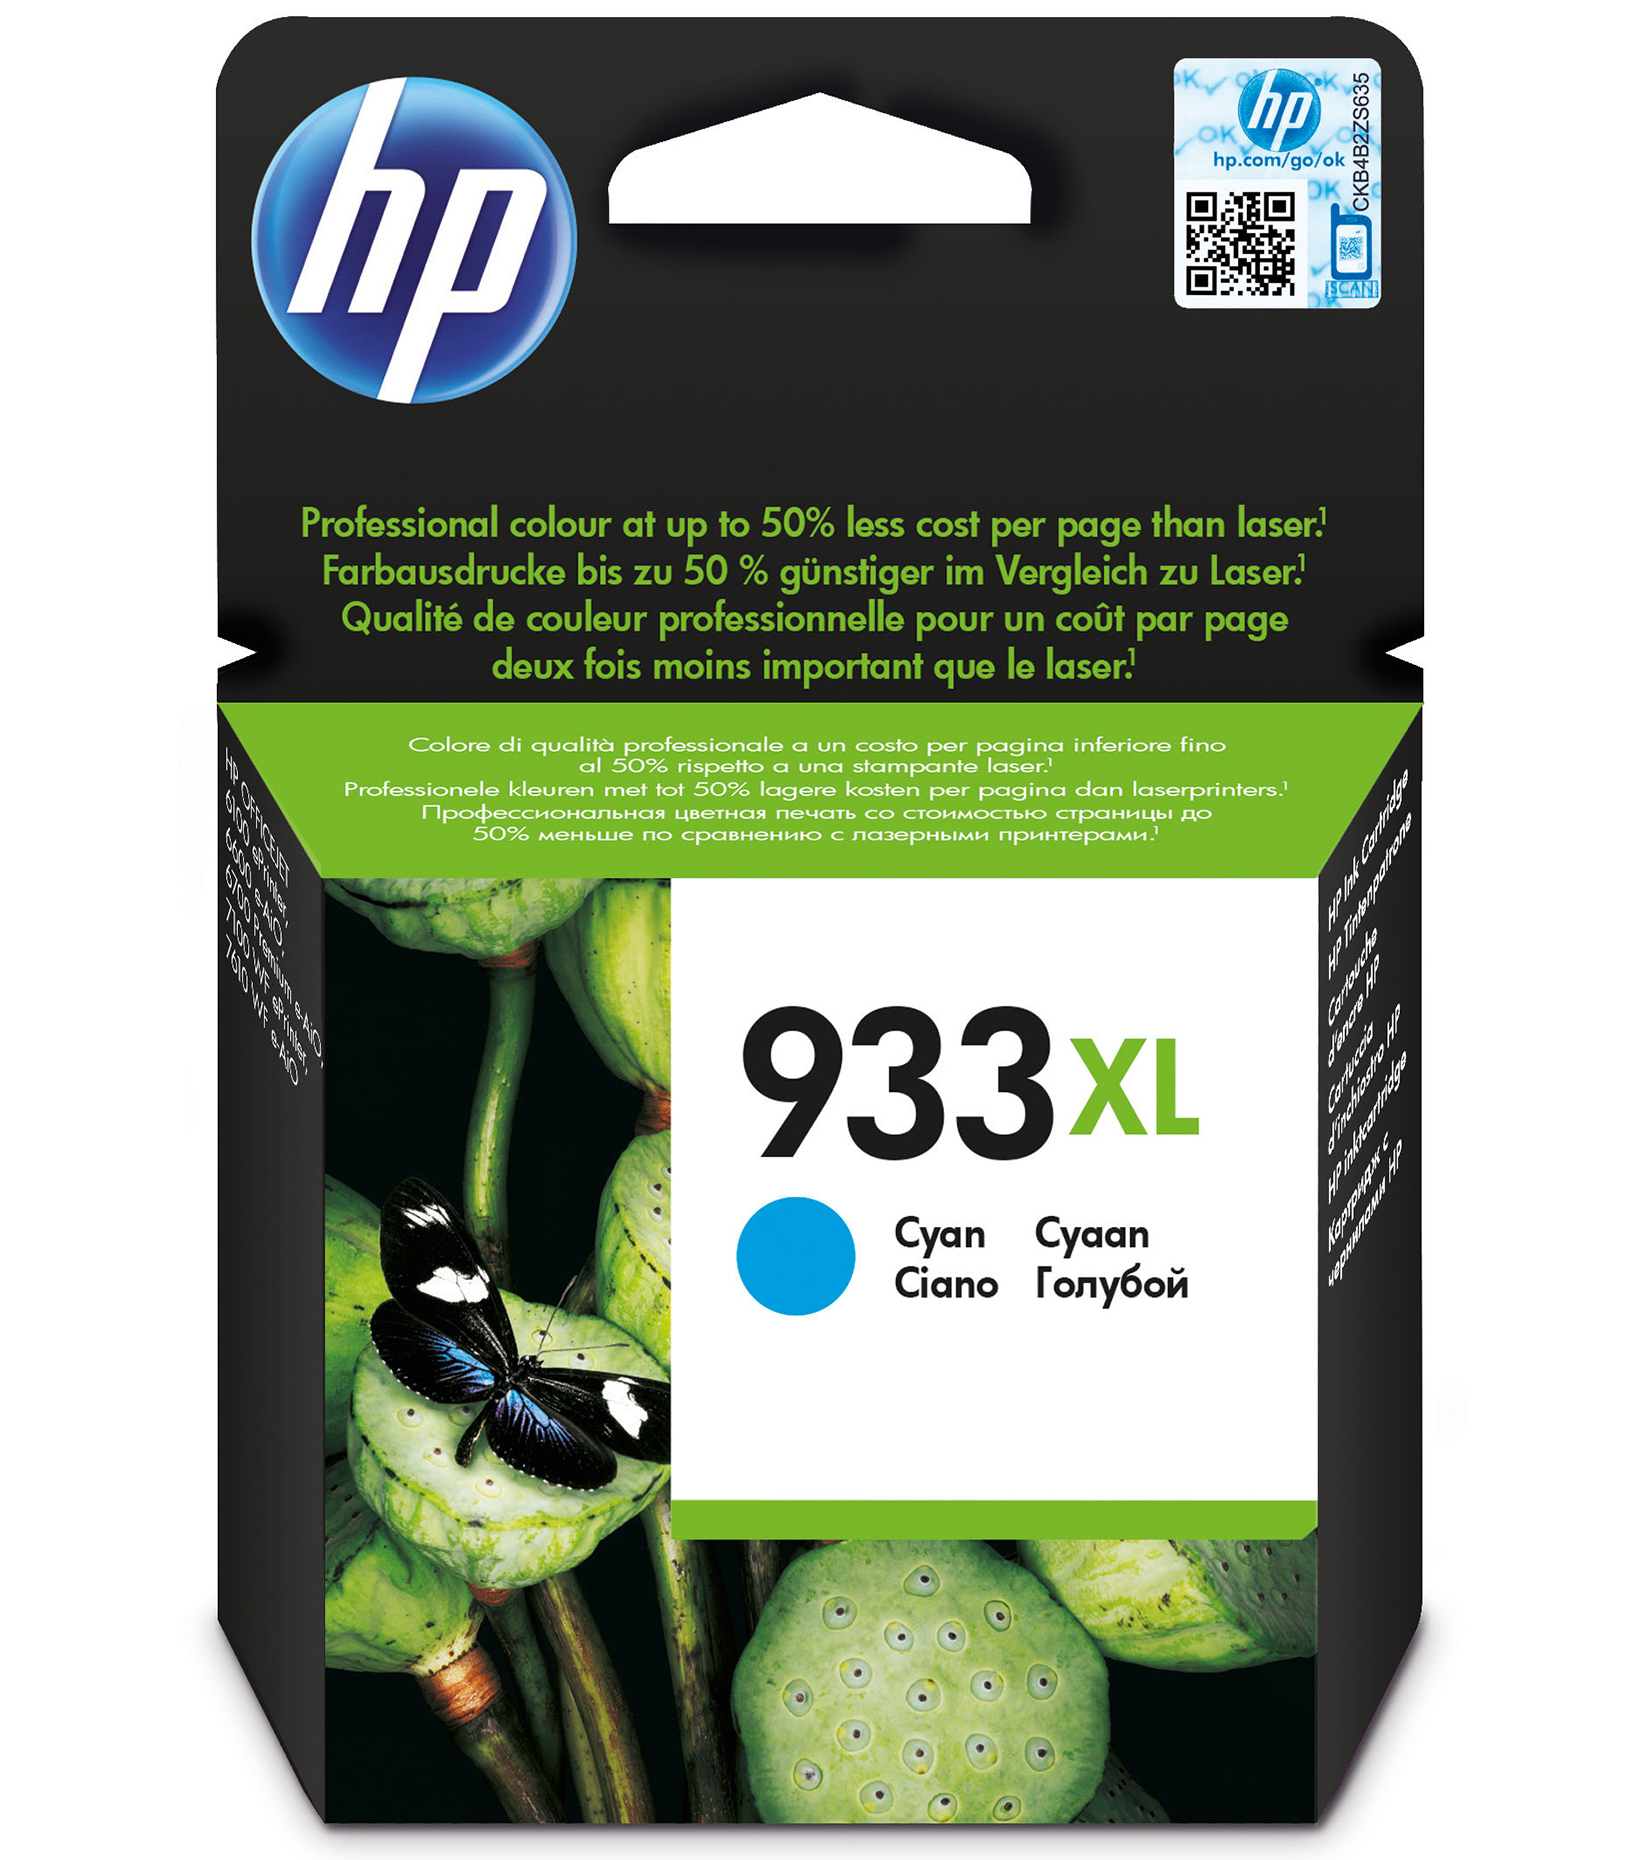 Remanufactured HP CN054AE (933XL) Cyan Ink Cartridge 0k825 CN054AE - rem01